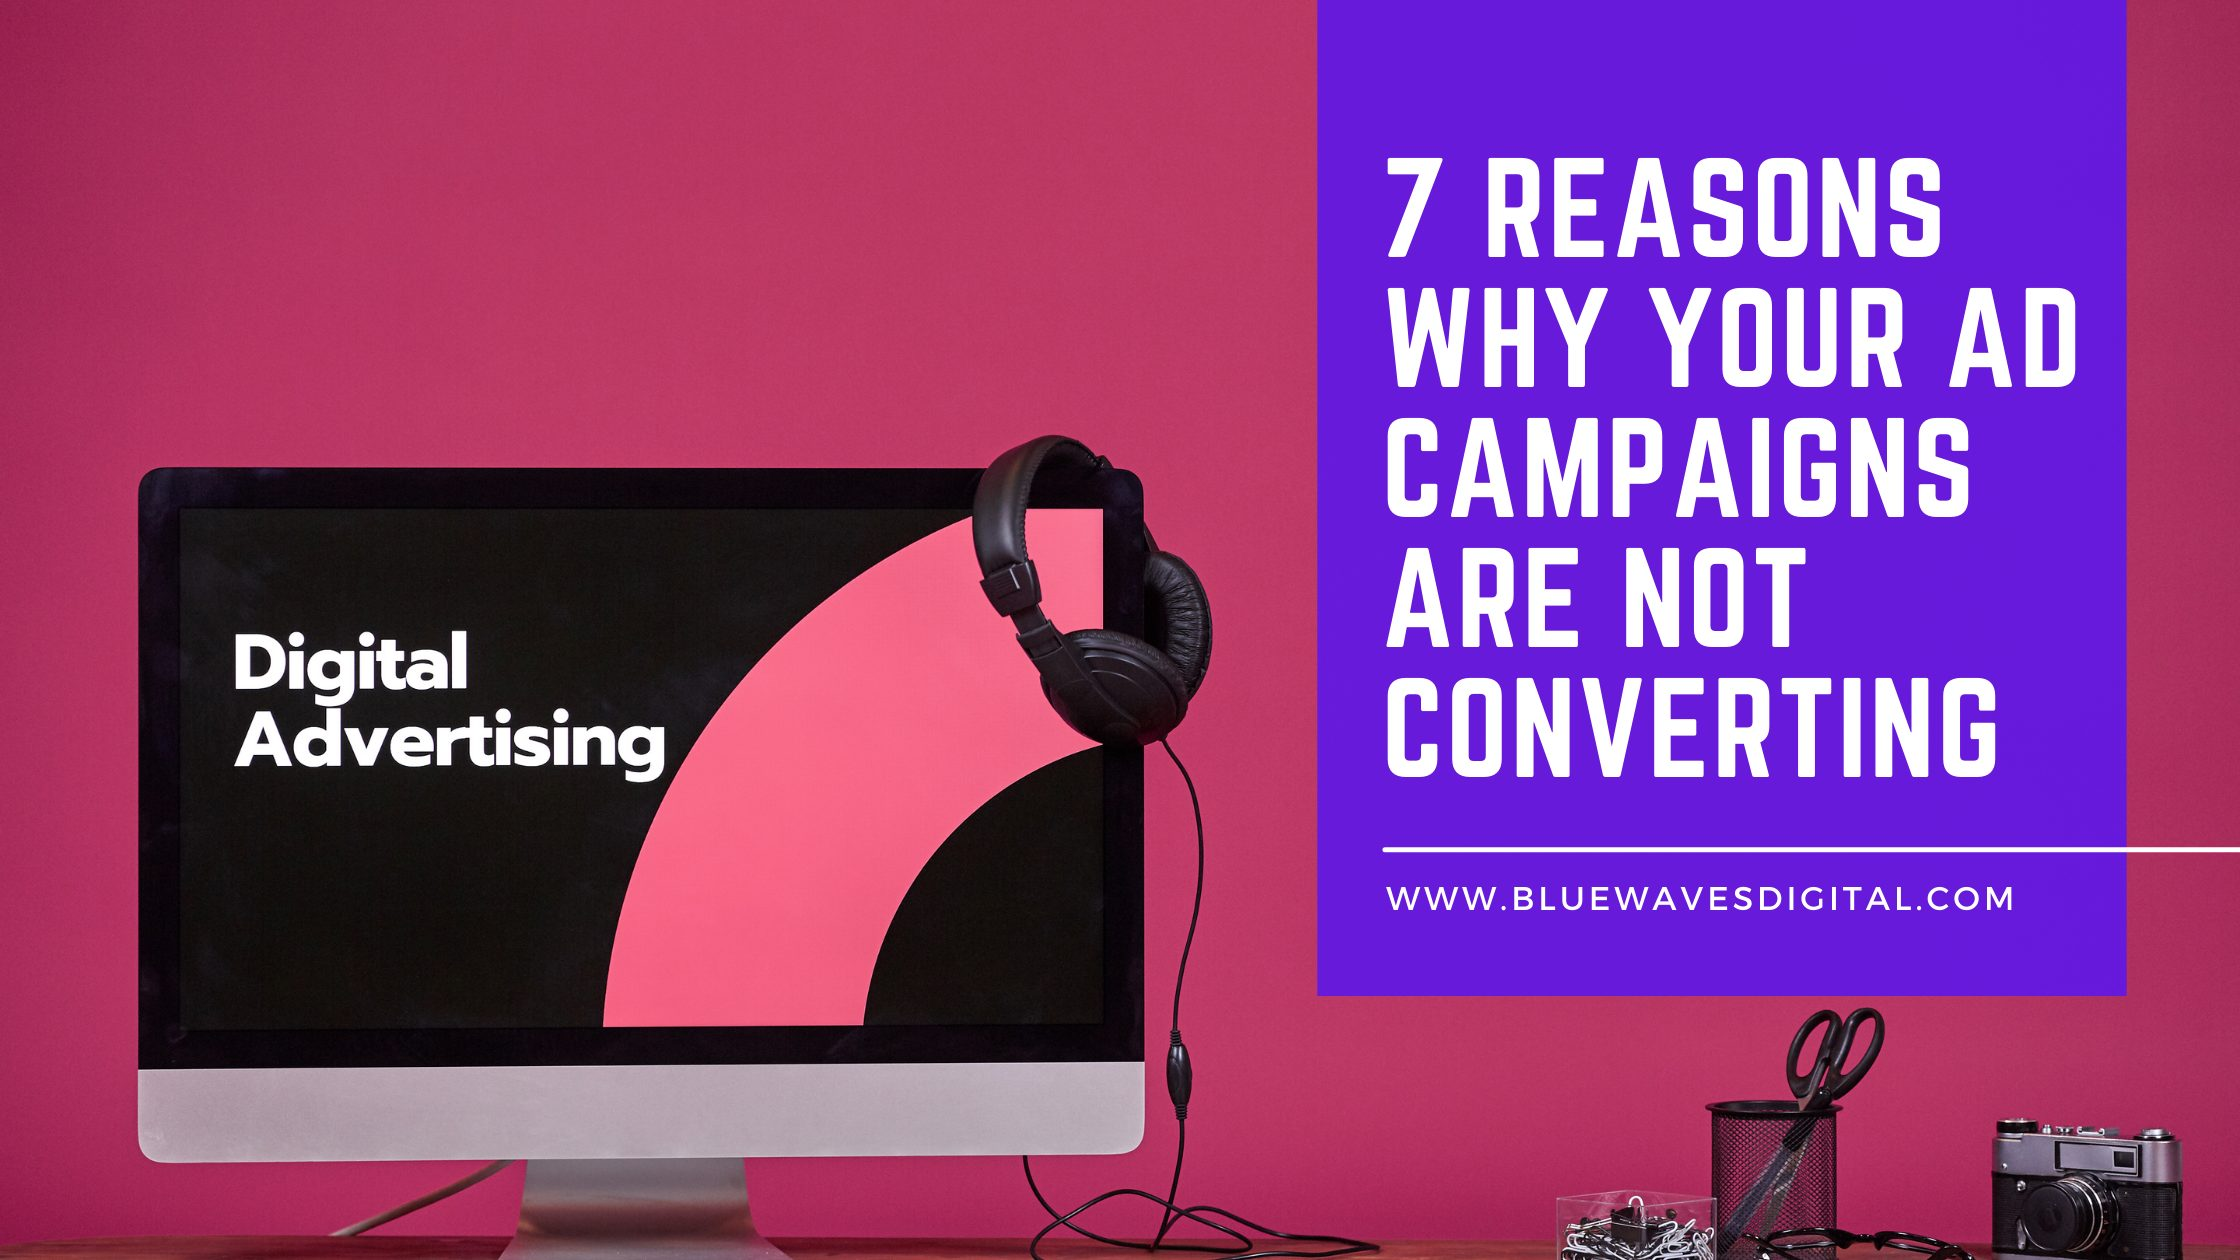 7 Reasons Why Your Ad Campaigns Are Not Converting